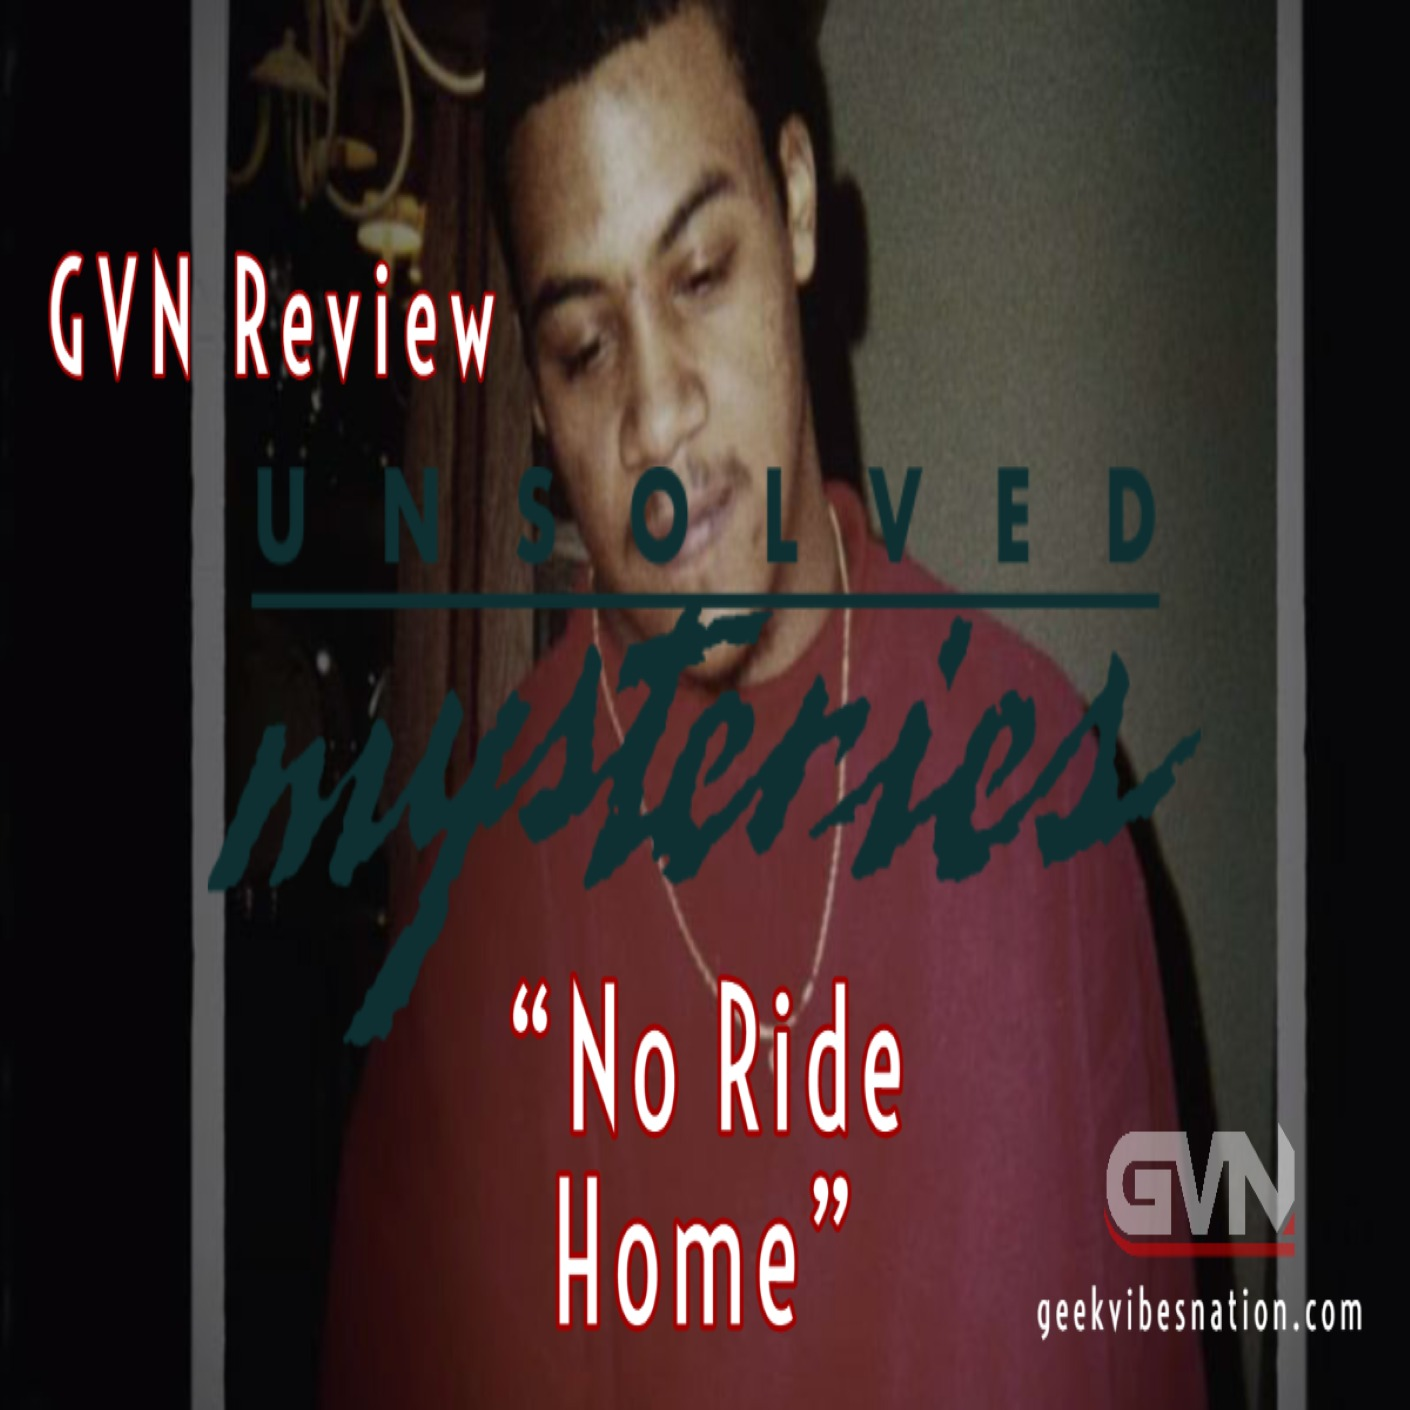 GVN Review: Unsolved Mysteries - No Ride Home